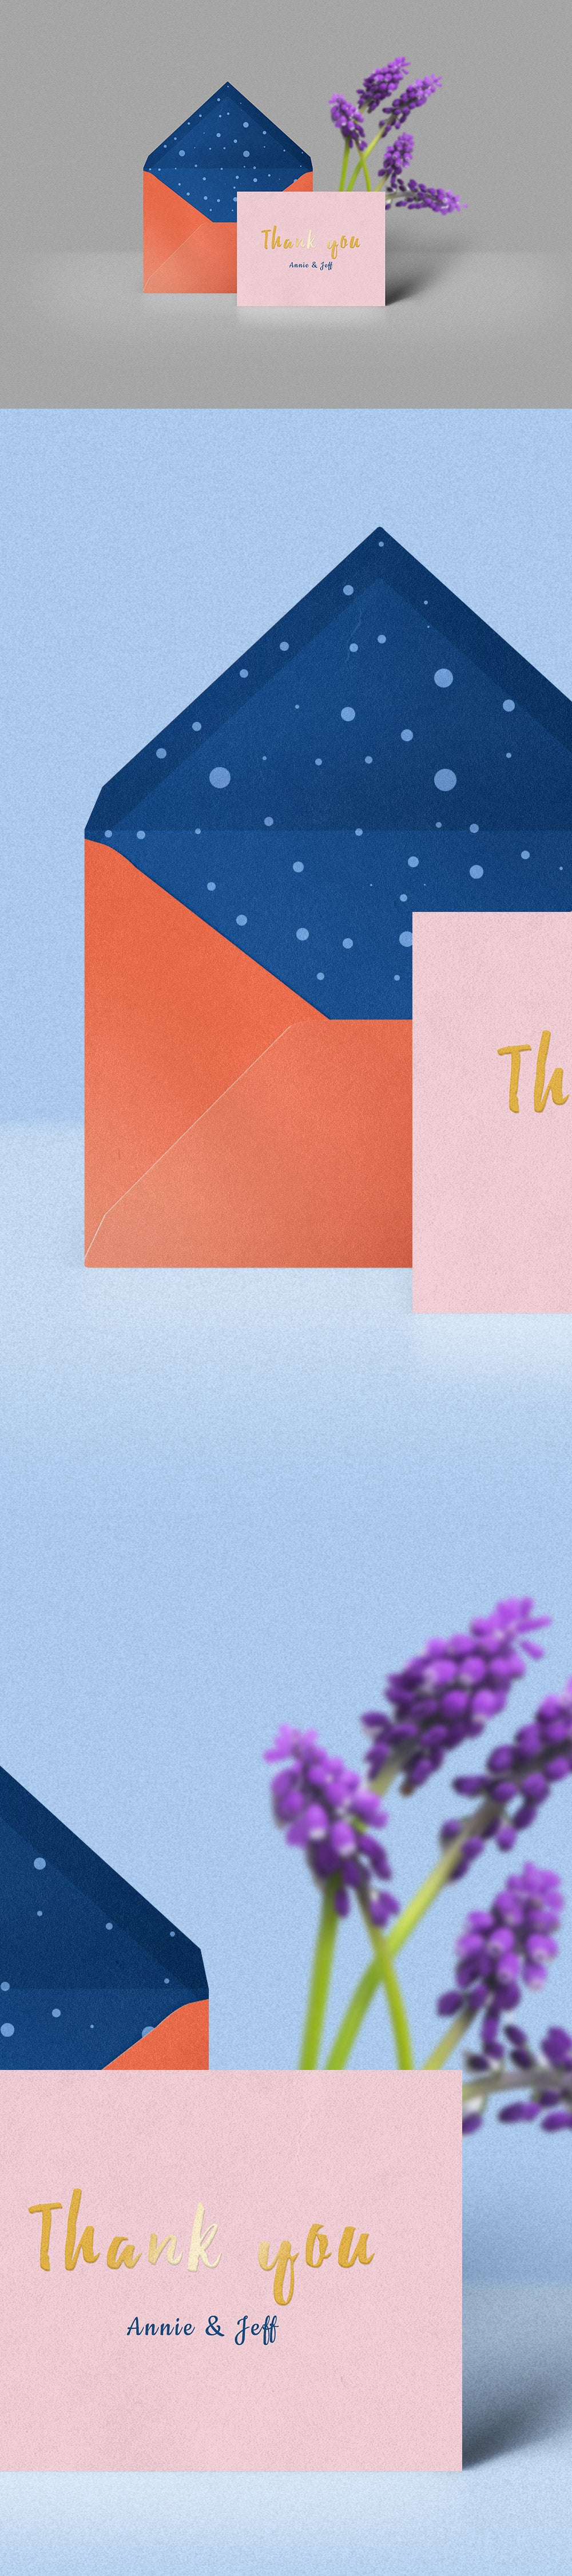 Free Thank You Card And Envelope Mockup